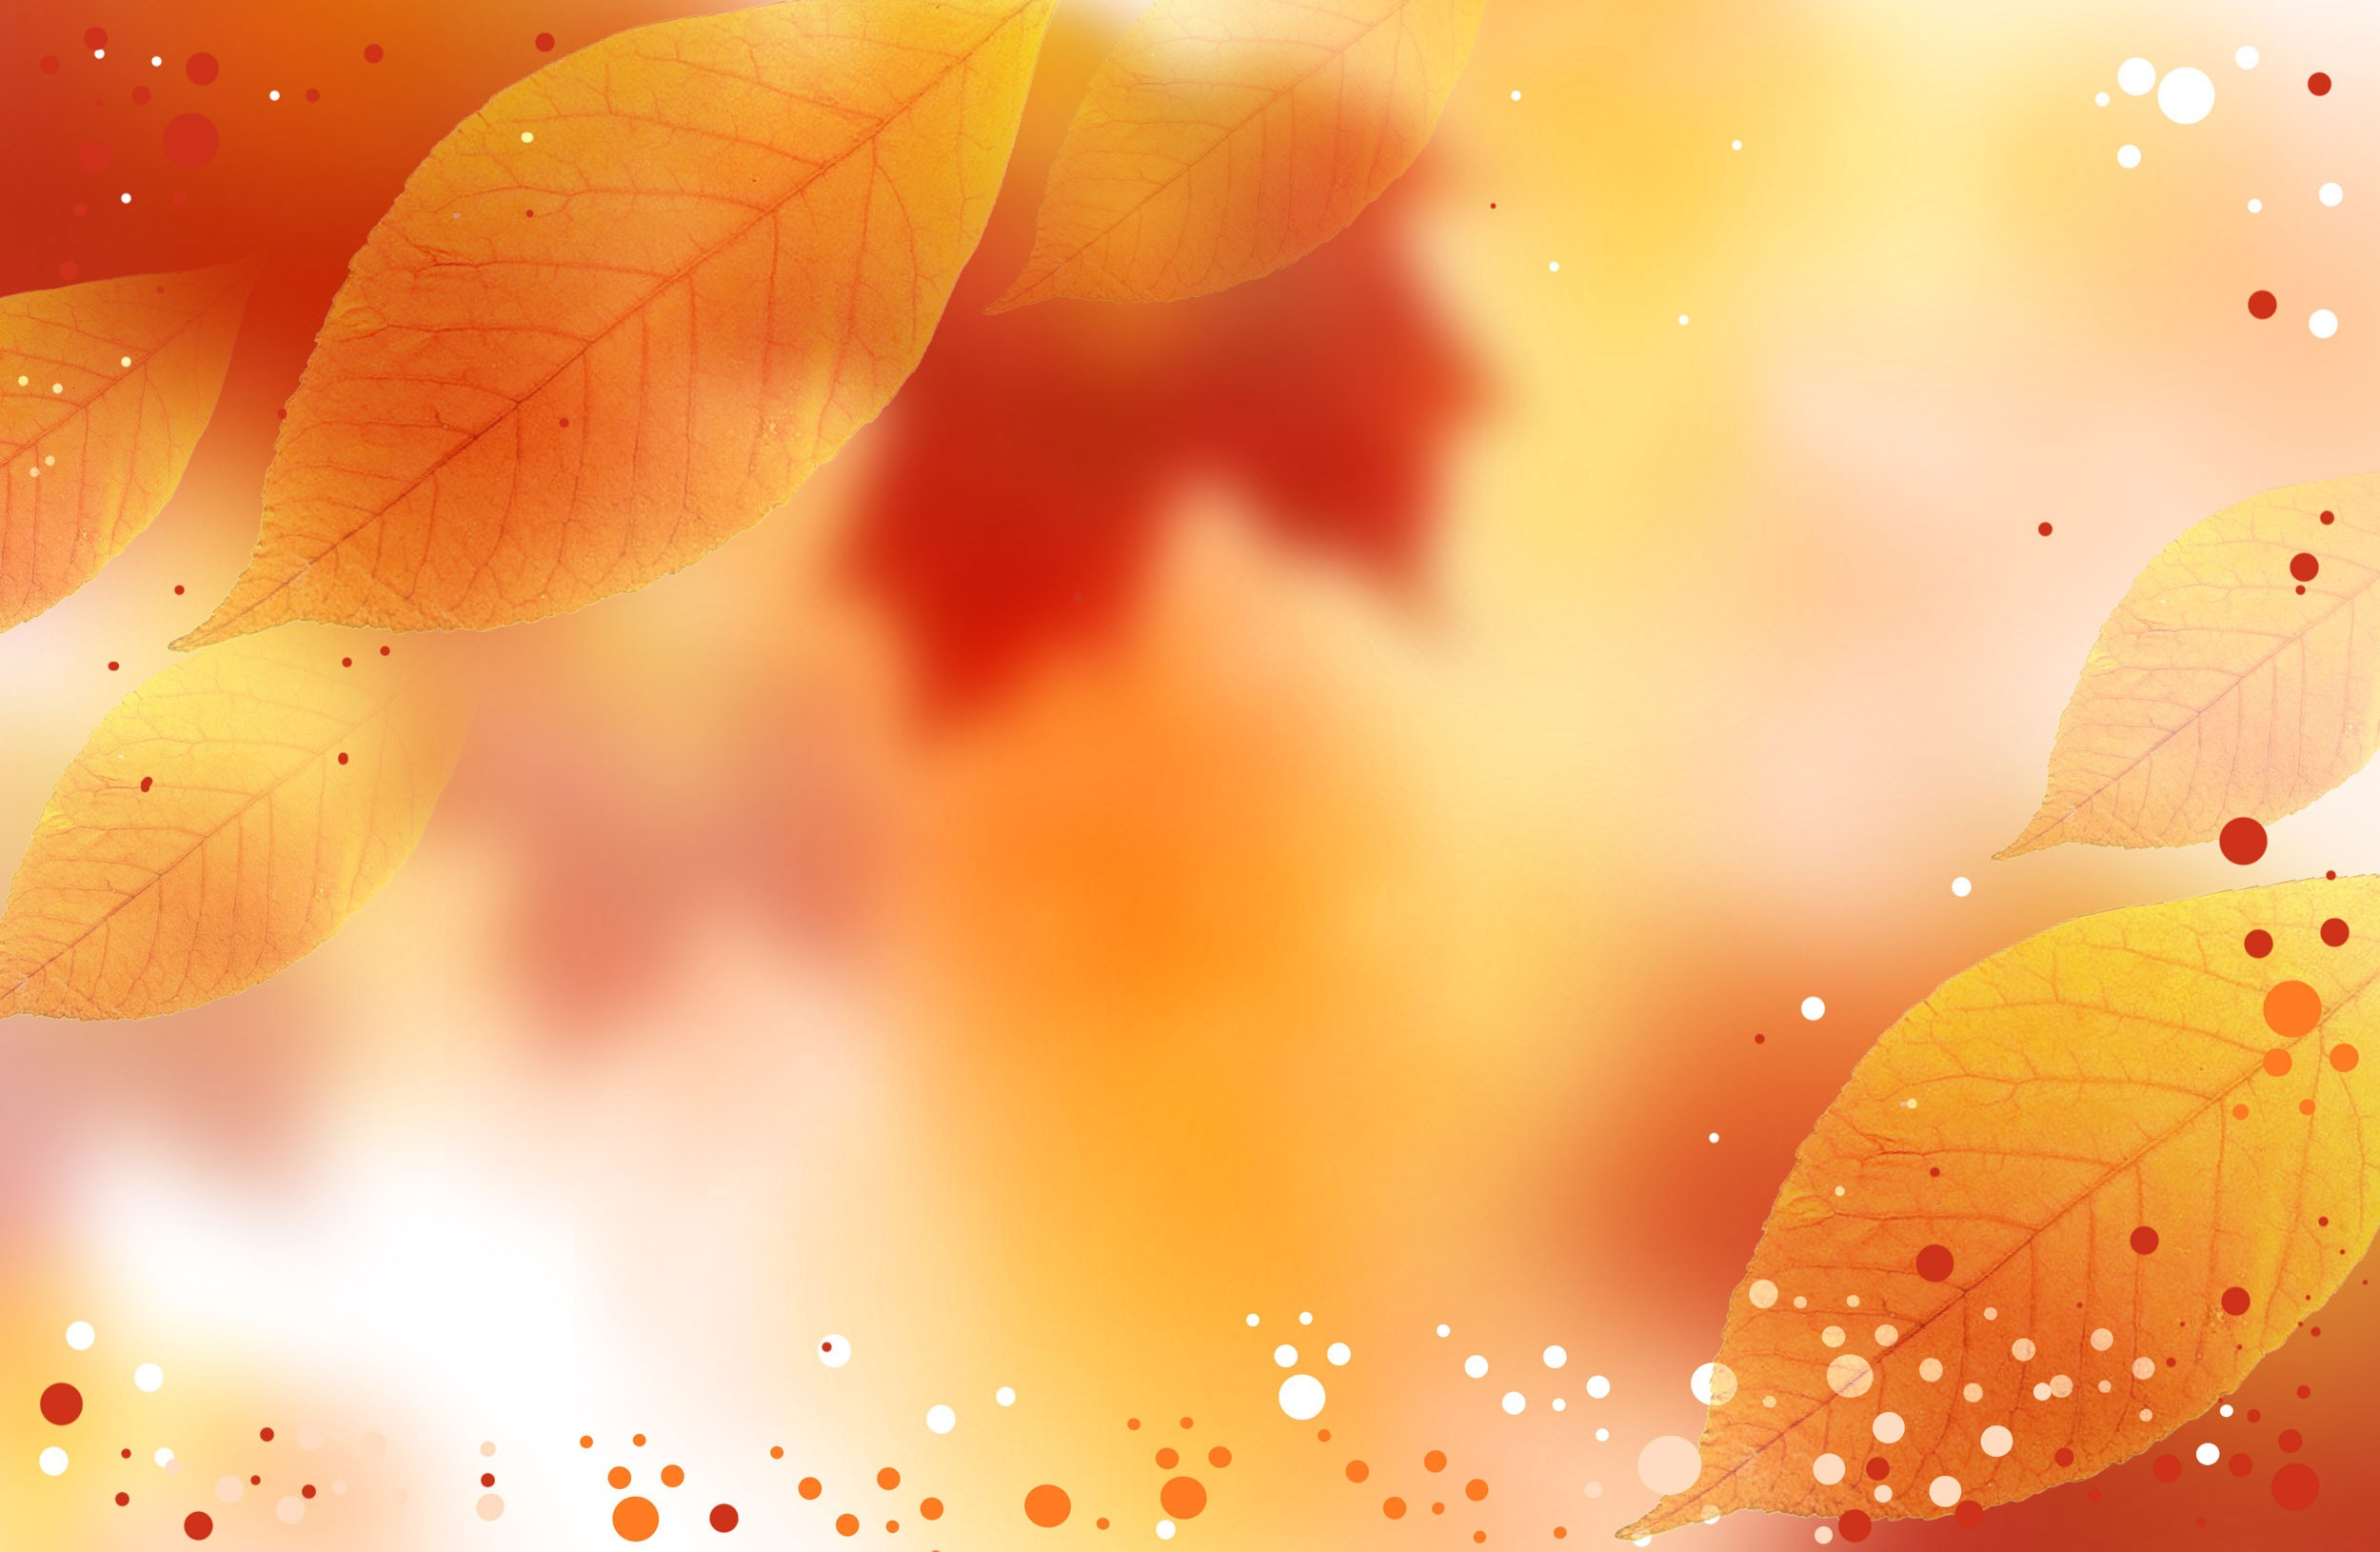 Hd Wallpapers For Mobile Free Download 480x800 70 Fall Color Backgrounds 183 ① Download Free Awesome